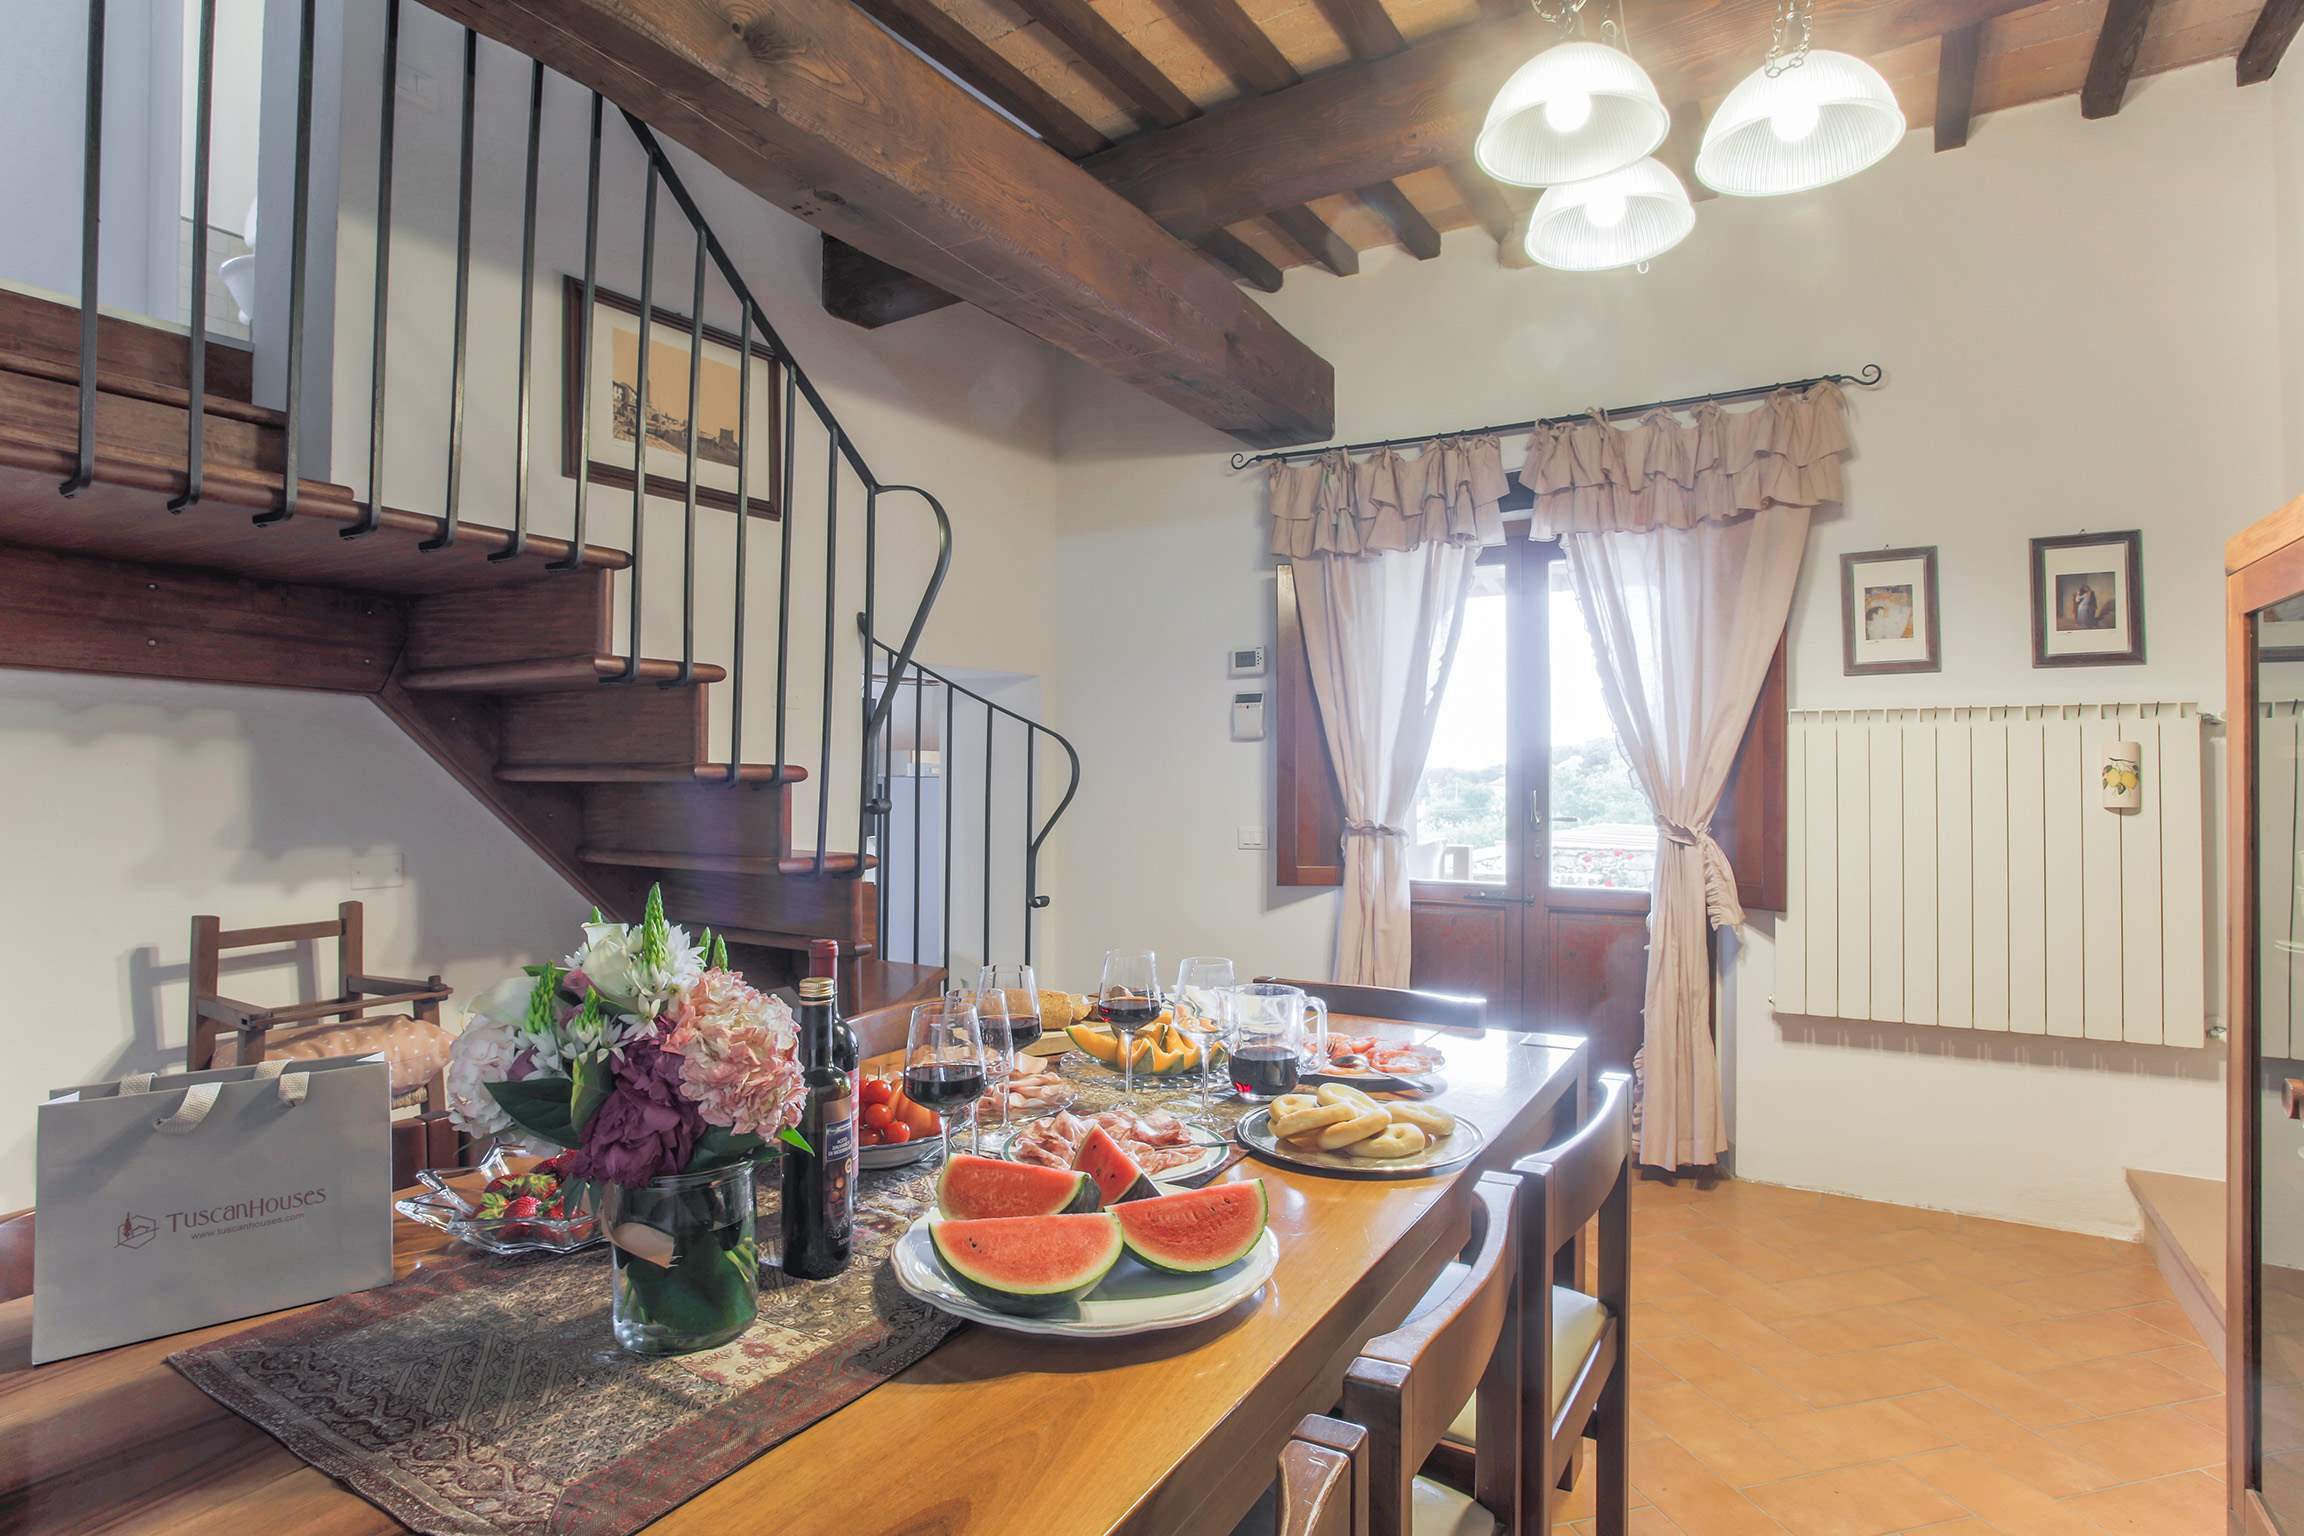 Casa Di Dante, 3 bedroom villa in North Tuscany - Pisa & Lucca Area, Tuscany Photo #11